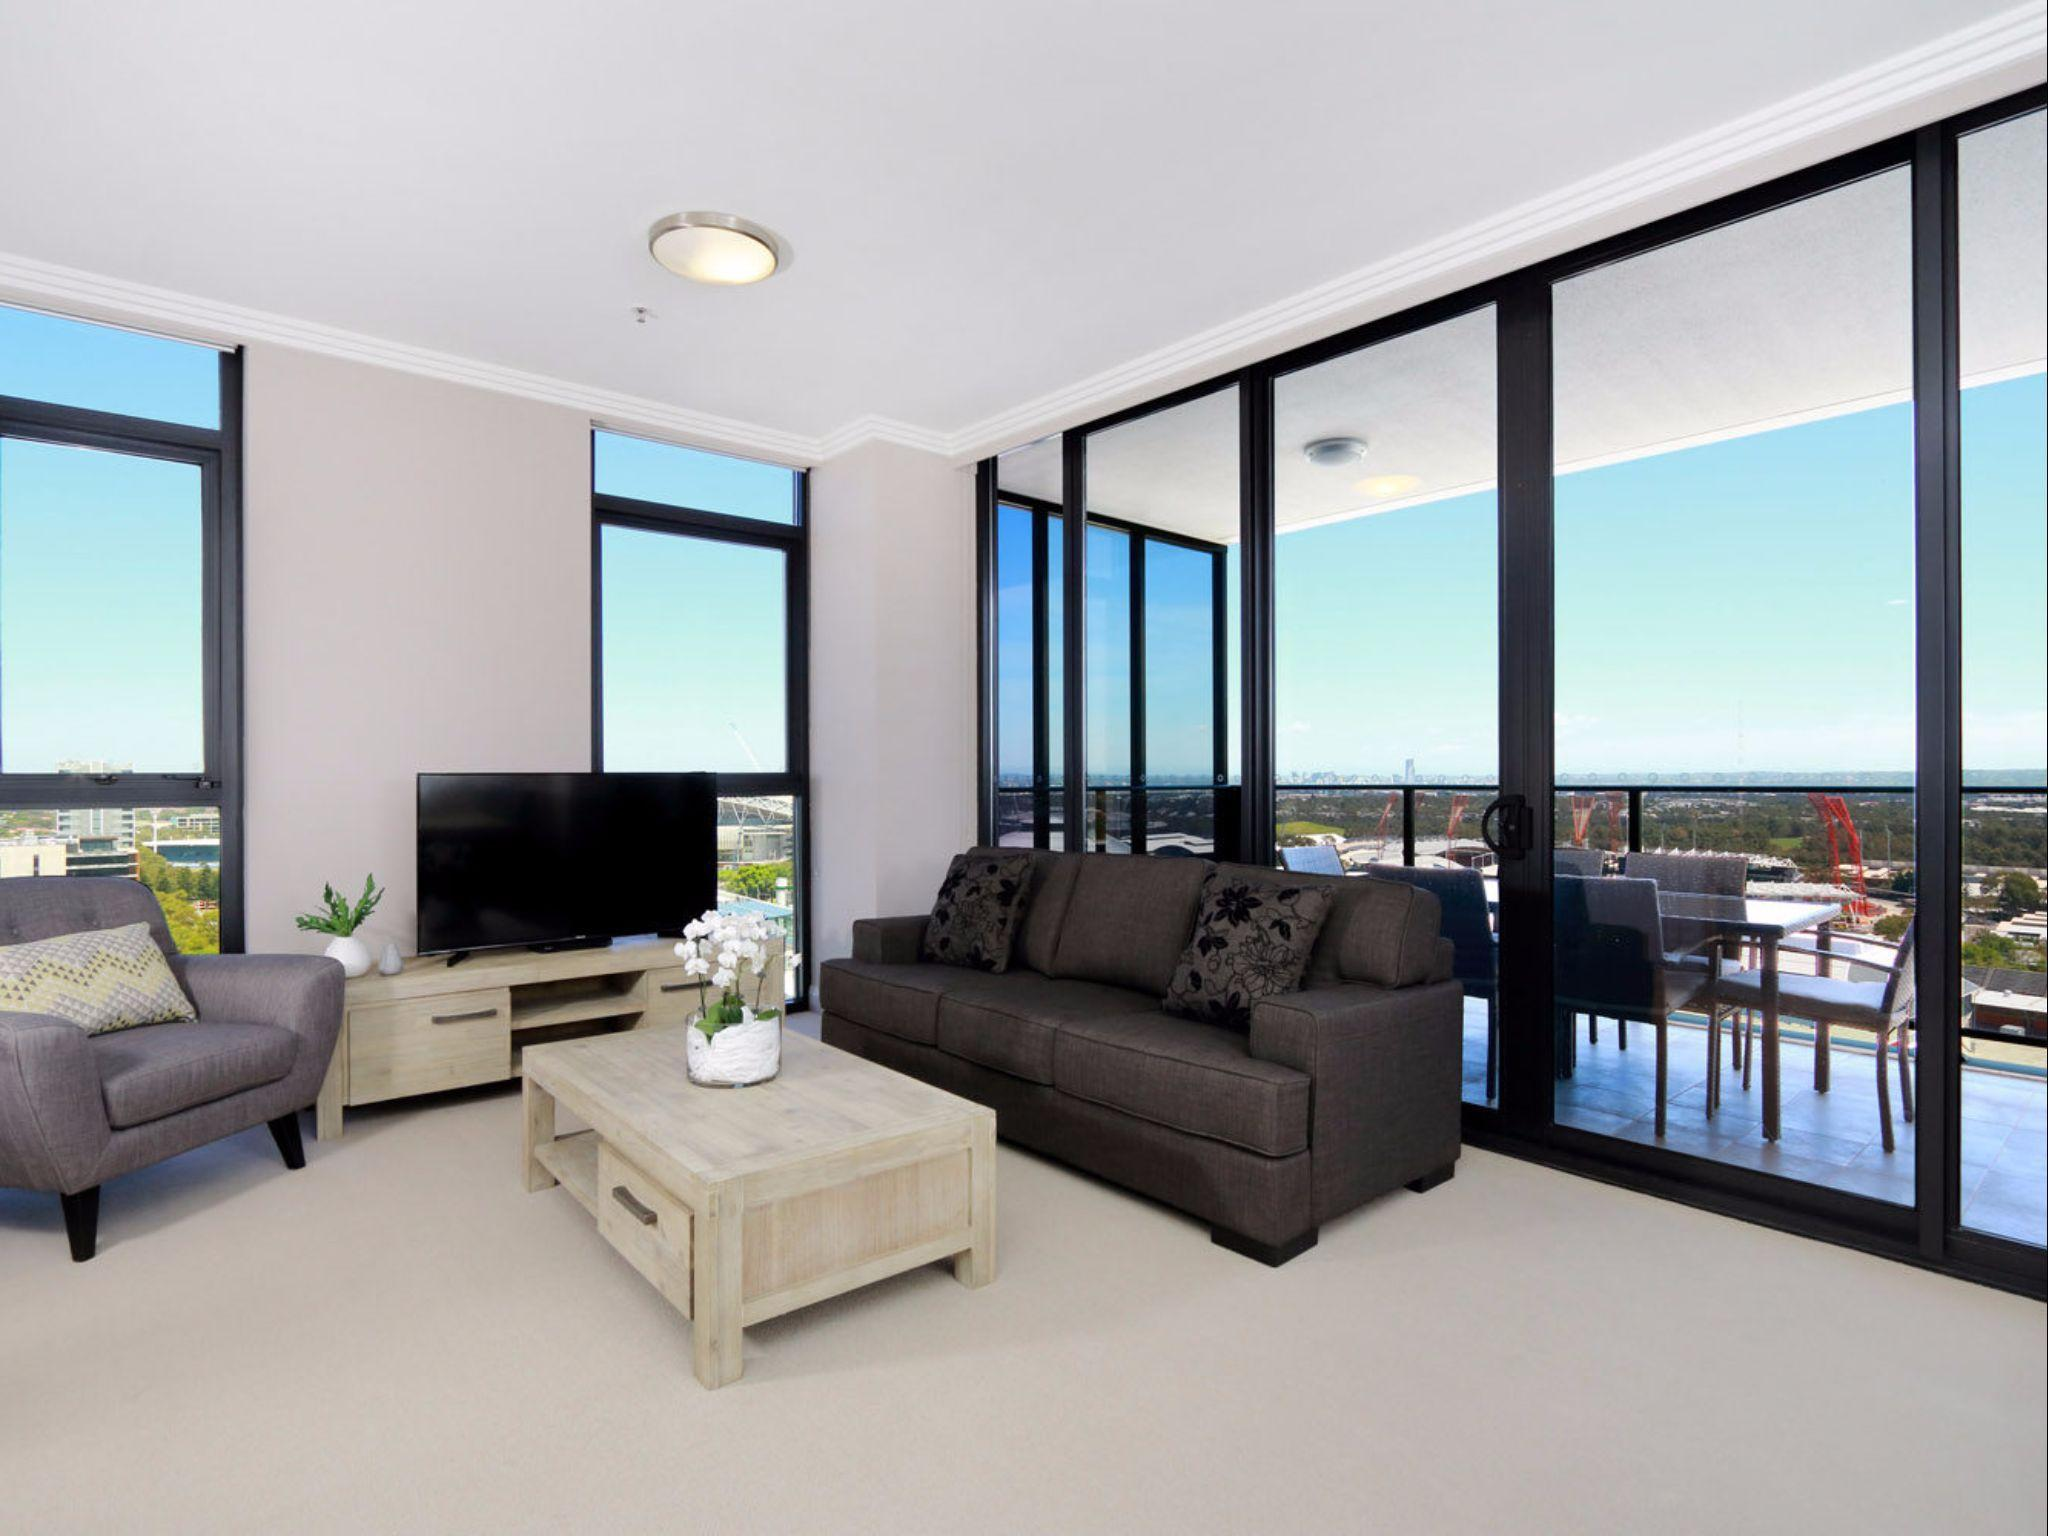 3 Bedroom with Olympic Park view